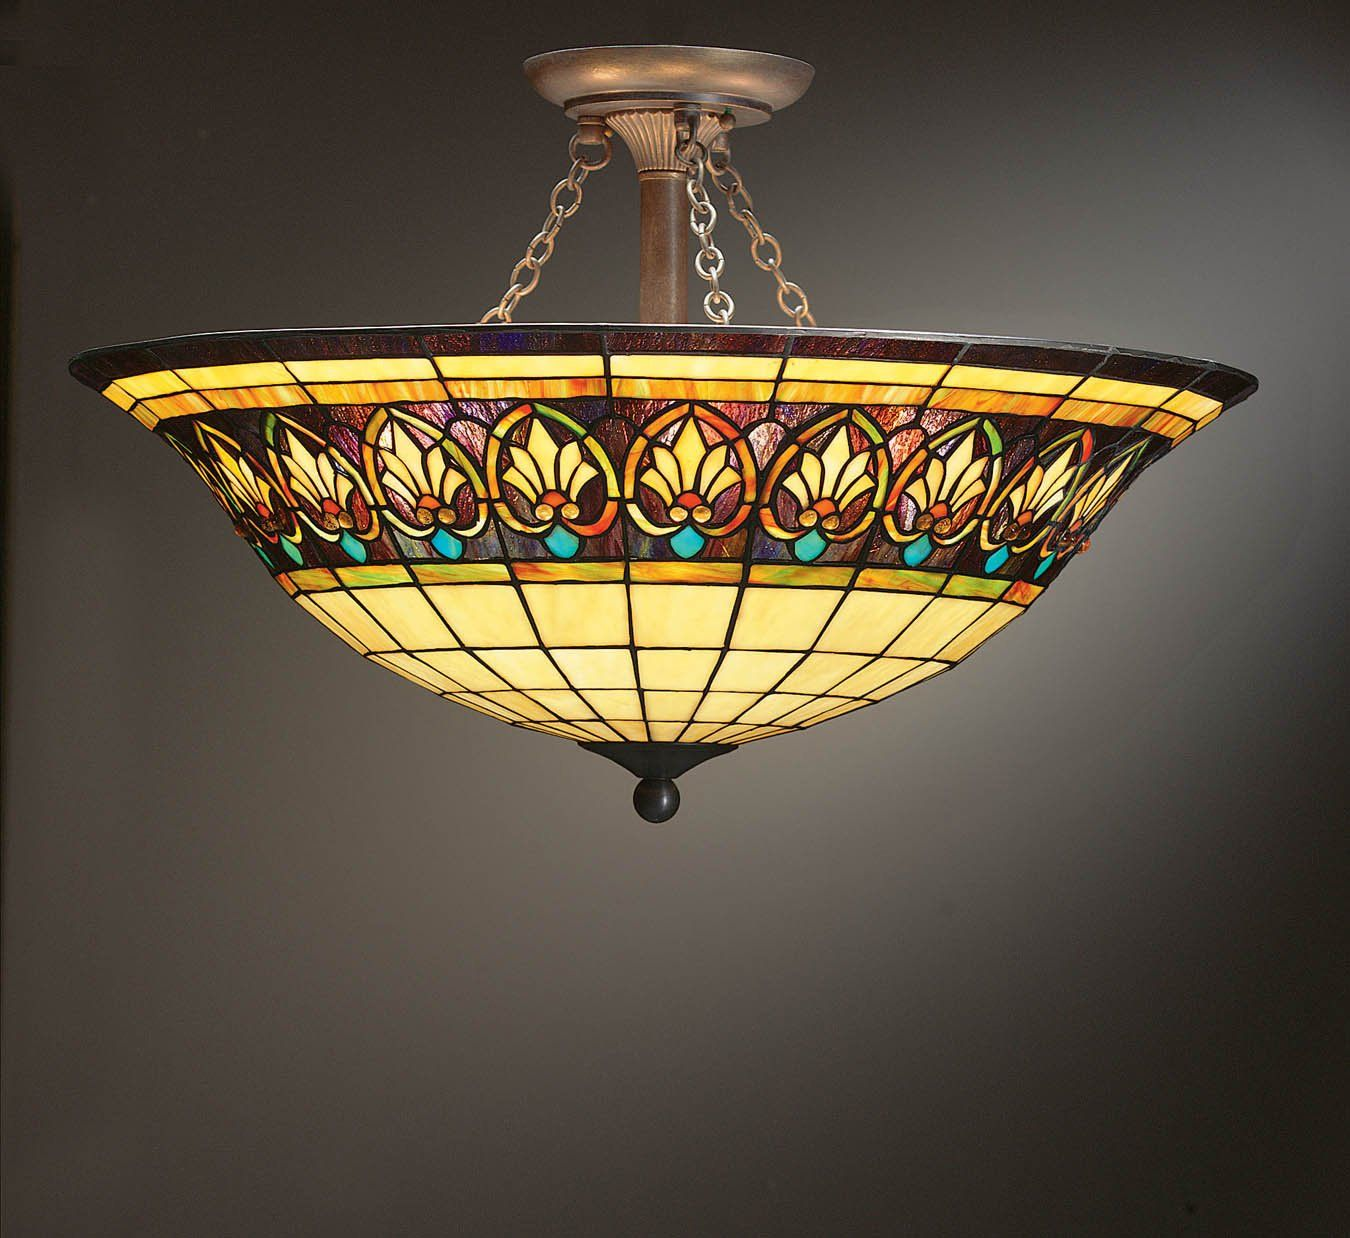 Tiffany Lighting Fixtures Lamps Blue Tiffany Lamps Lighting Ceiling Fans  Meyda Tiffany Lighting